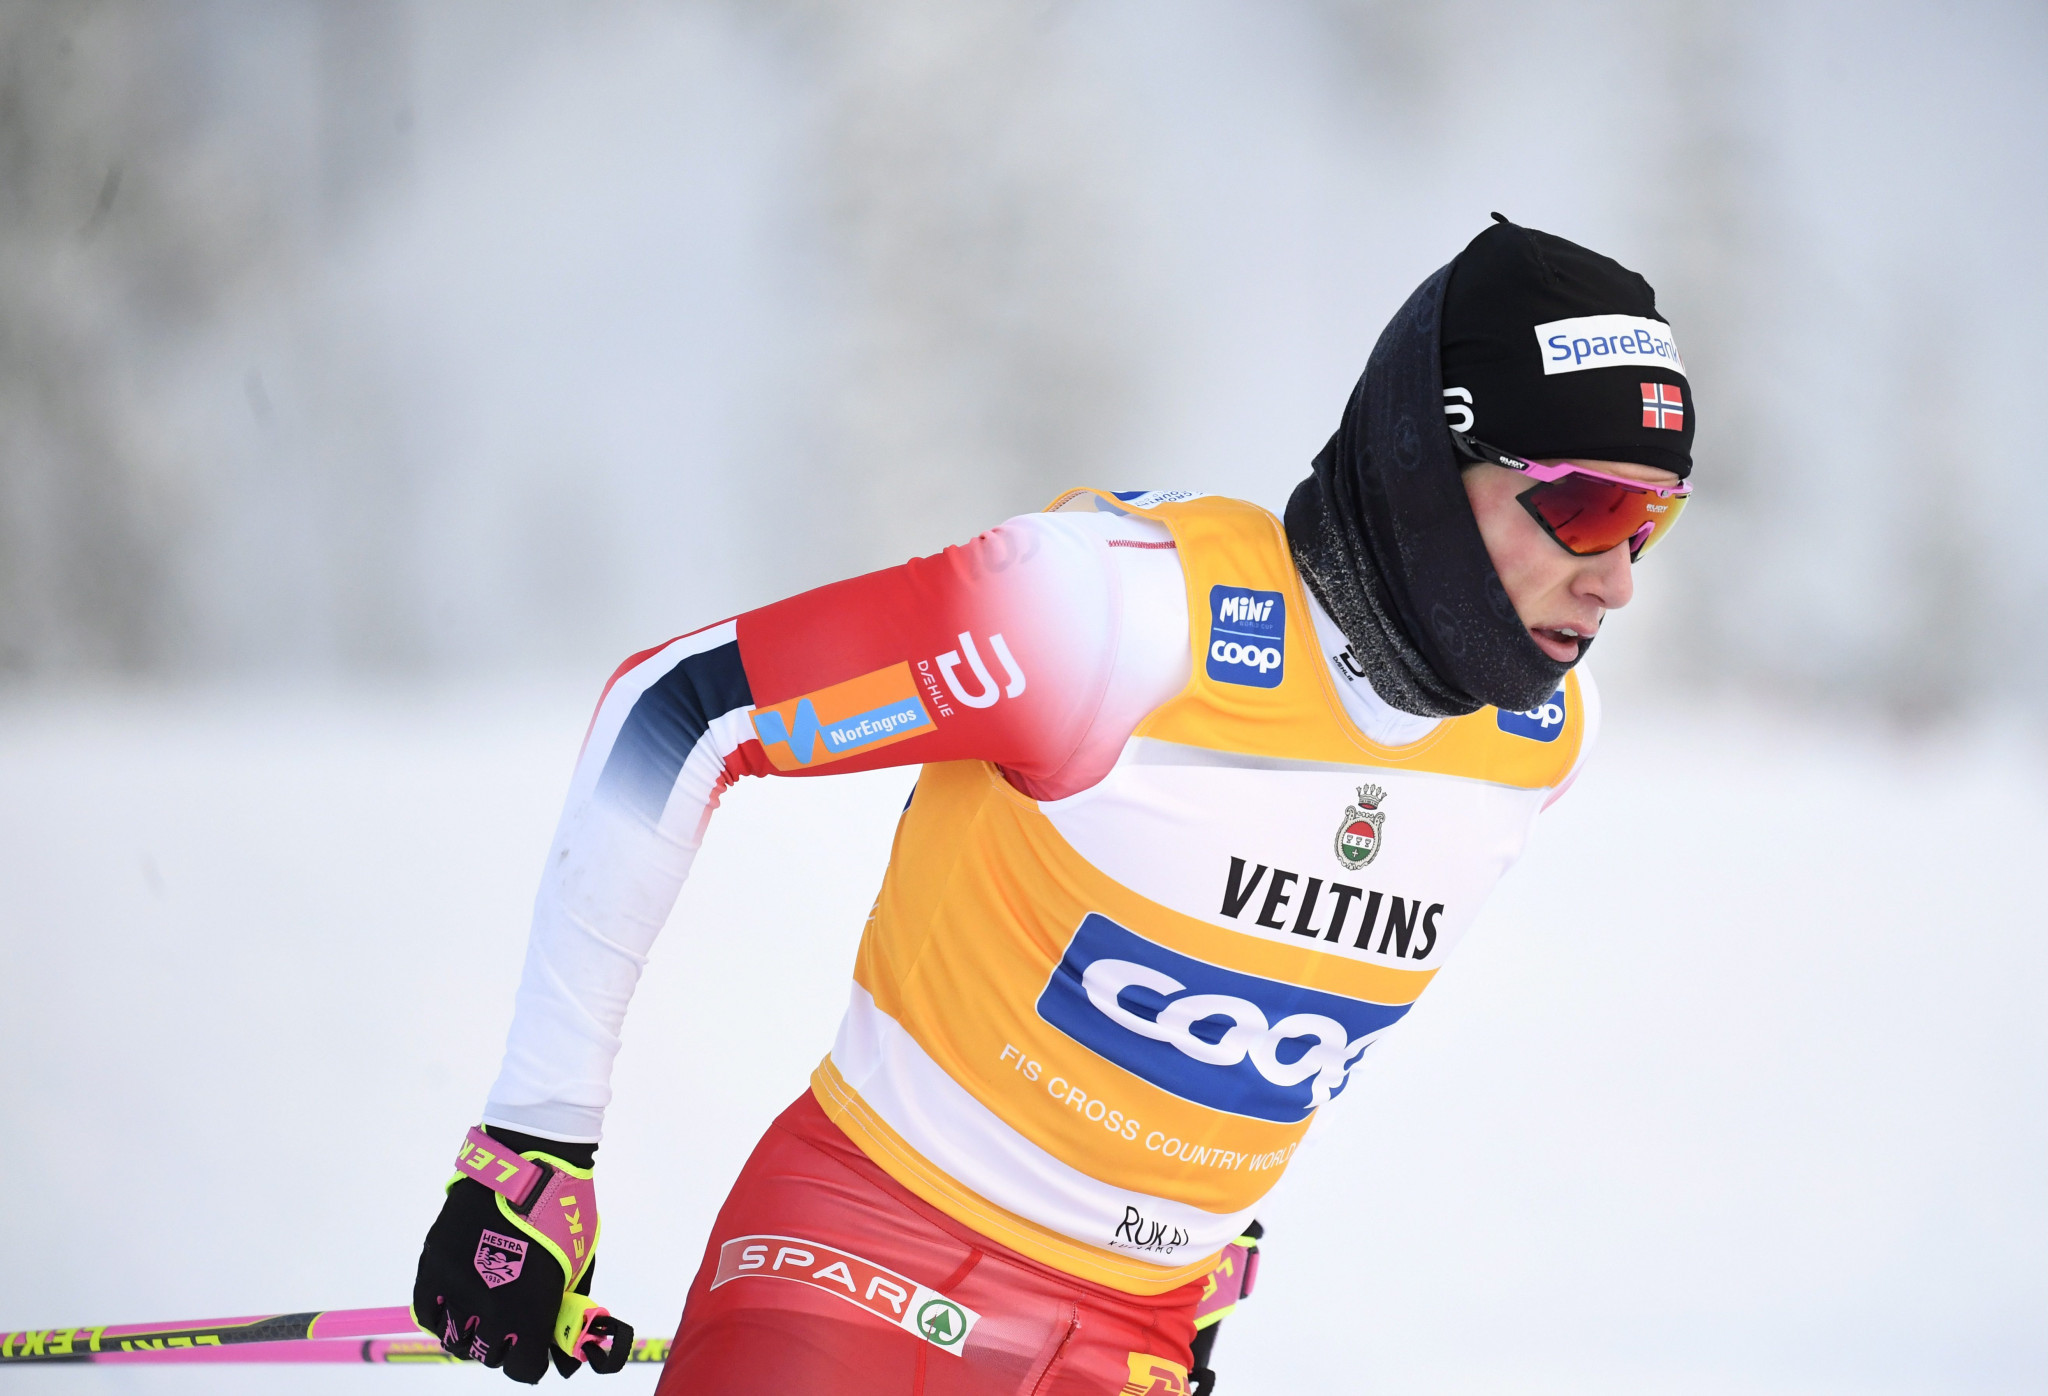 Johannes Høsflot Klæbo of Norway is aiming for a home victory at the FIS Cross-Country World Cup event in Lillehammer ©Getty Images